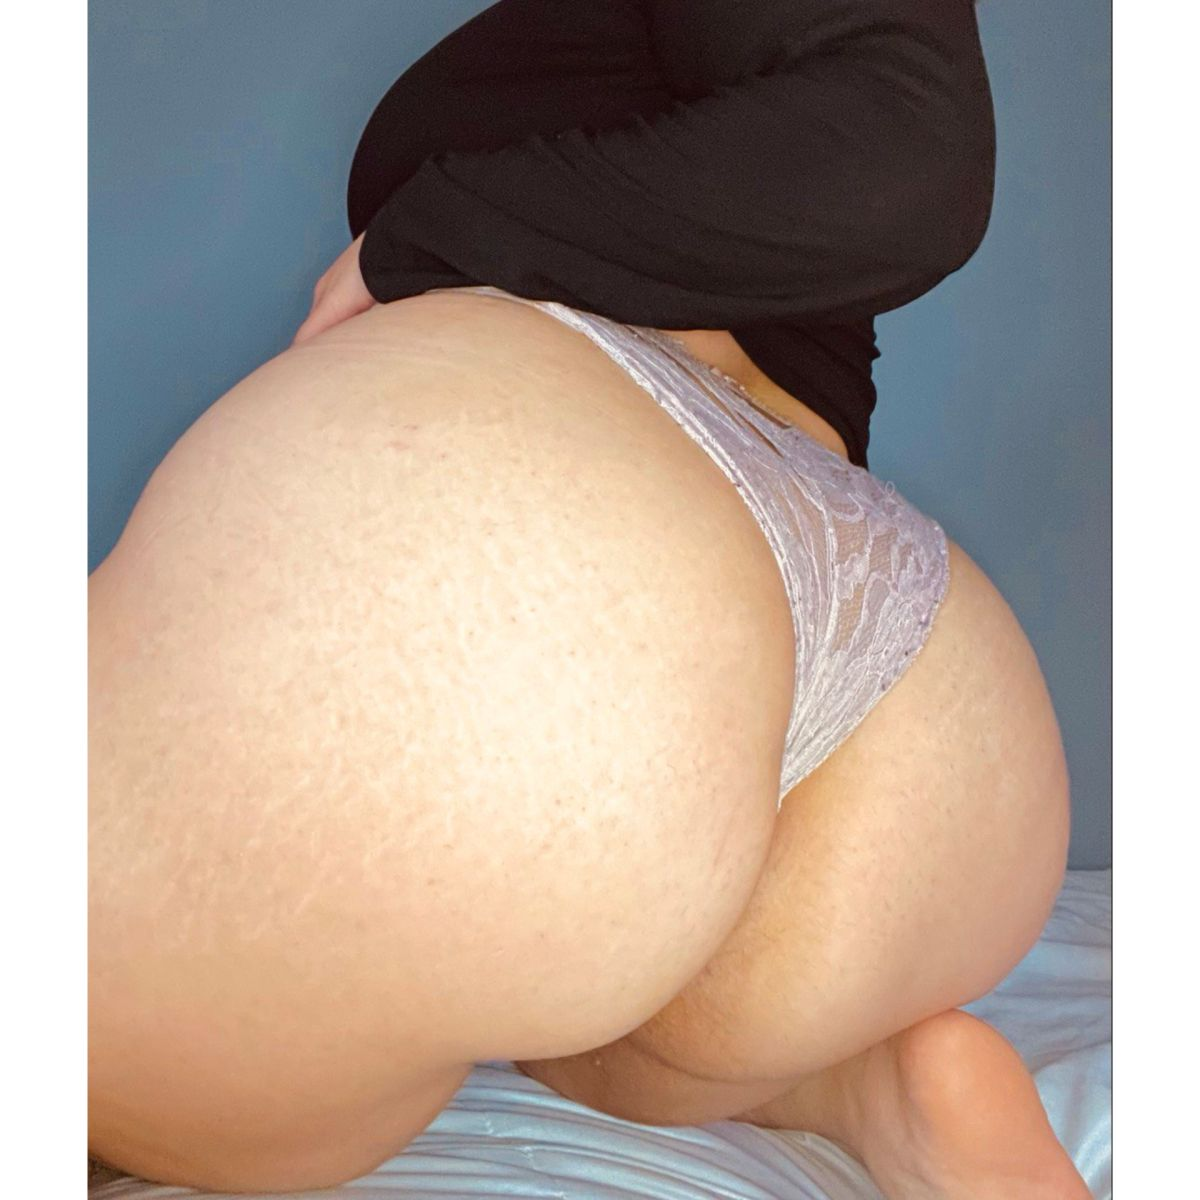 $3 SEXTING 24/7 nudes onlyfans onlyfans leaked